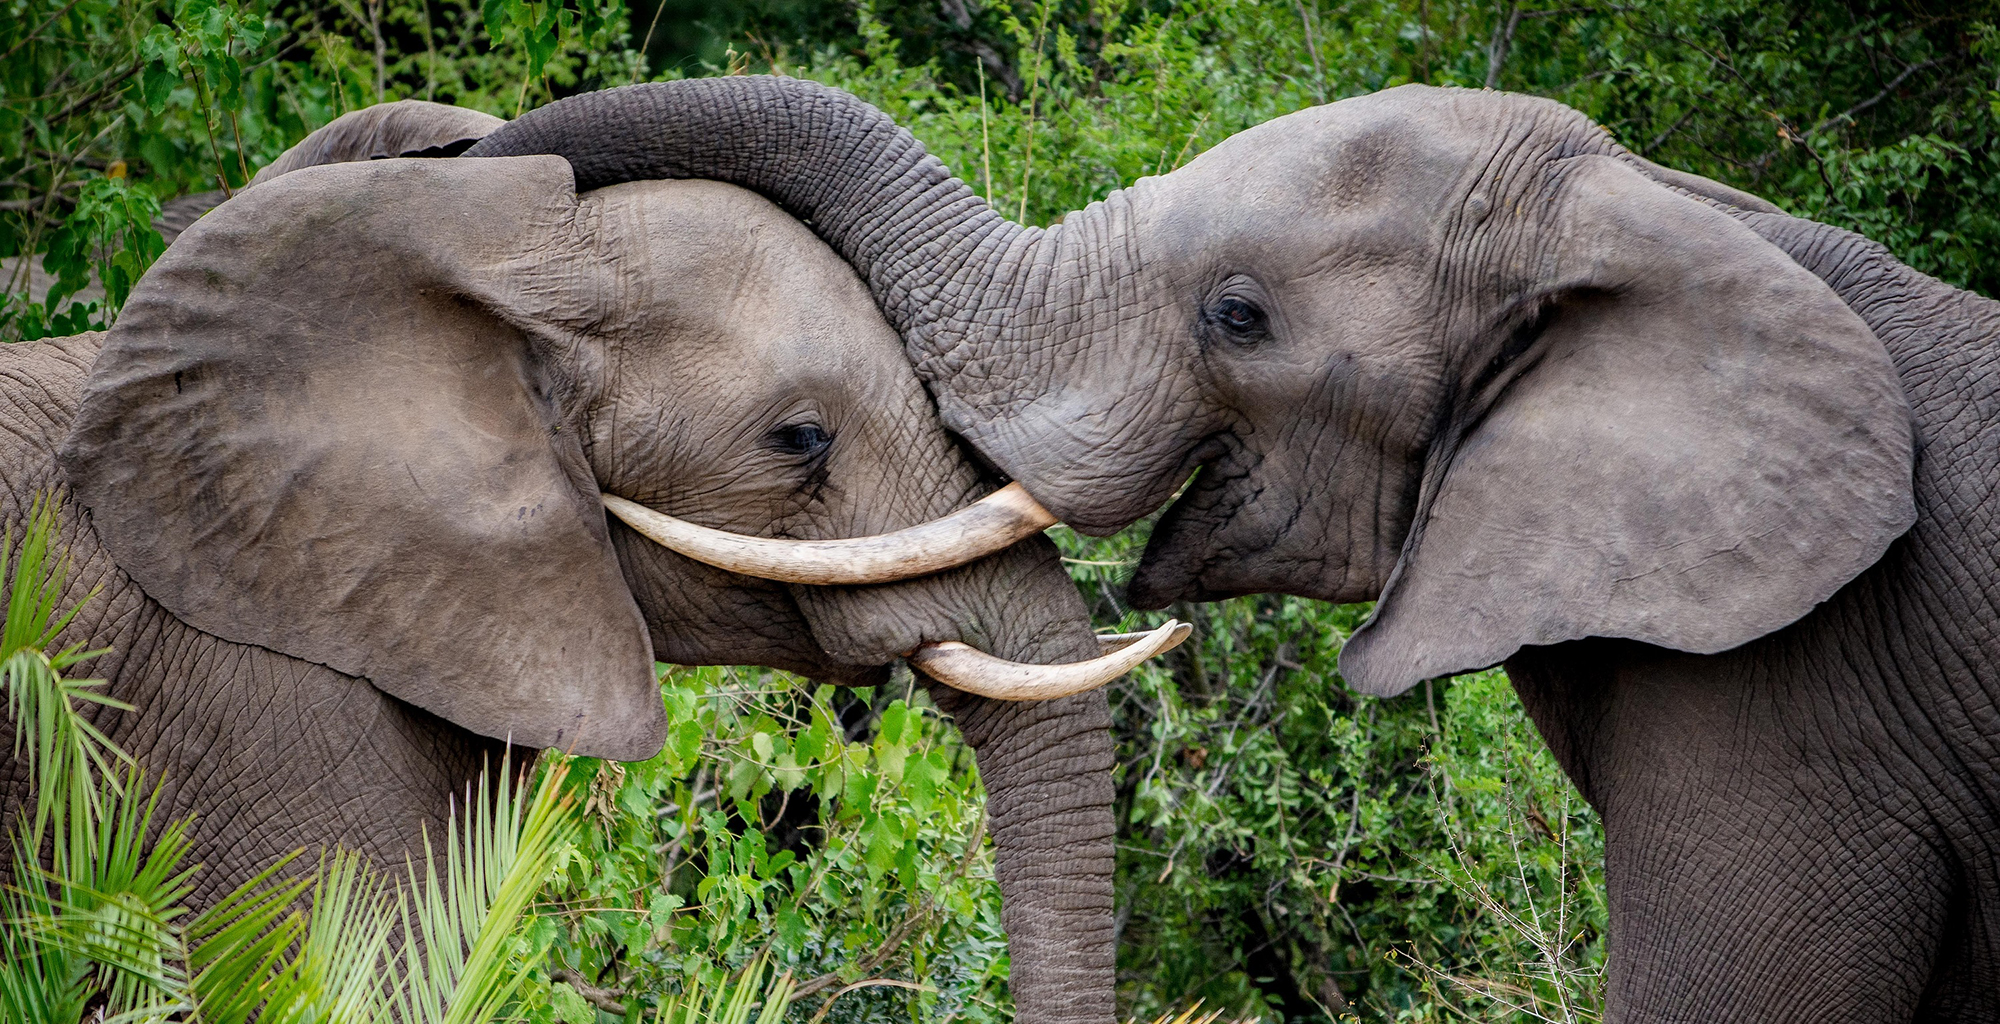 South-Africa-Kruger-National-Park-Elephants